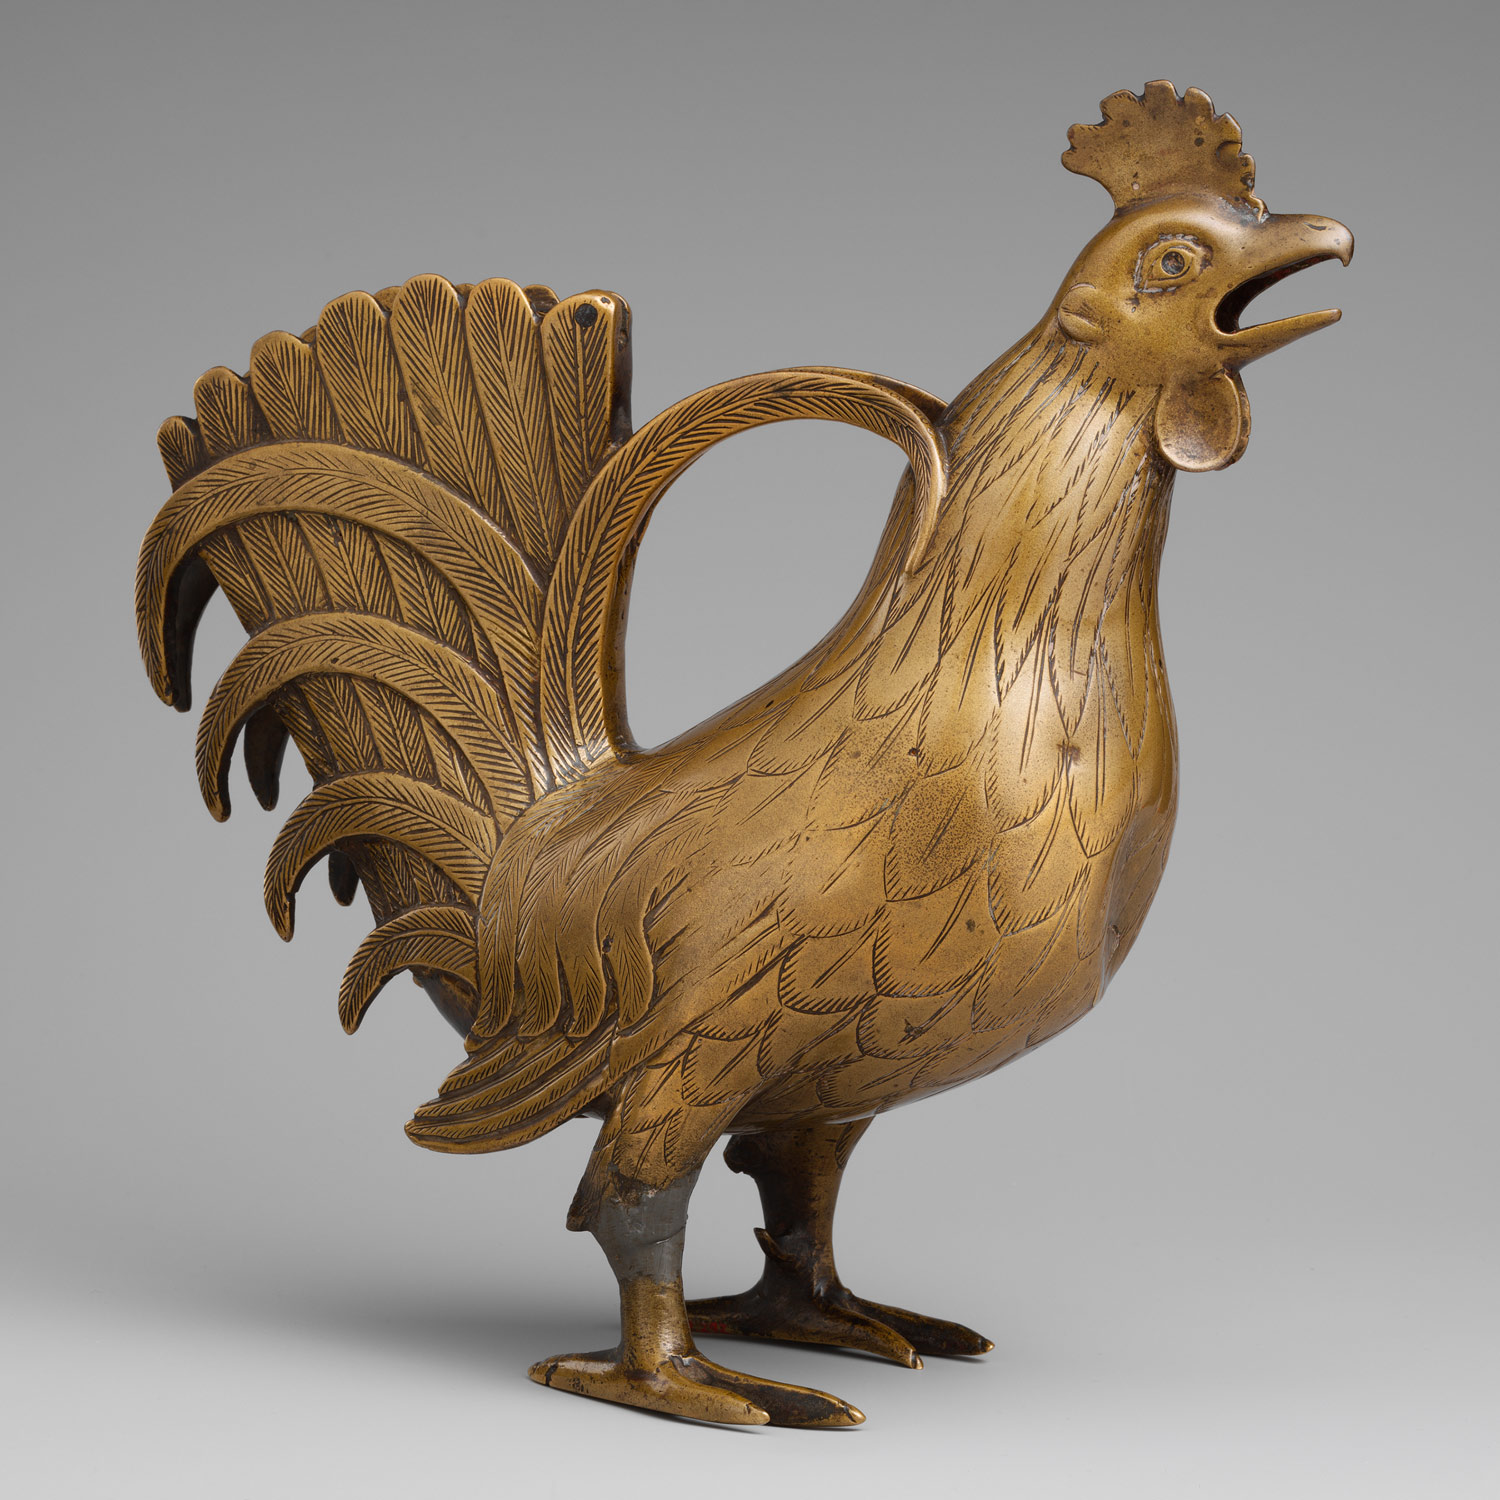 Aquamanile in the Form of a Rooster